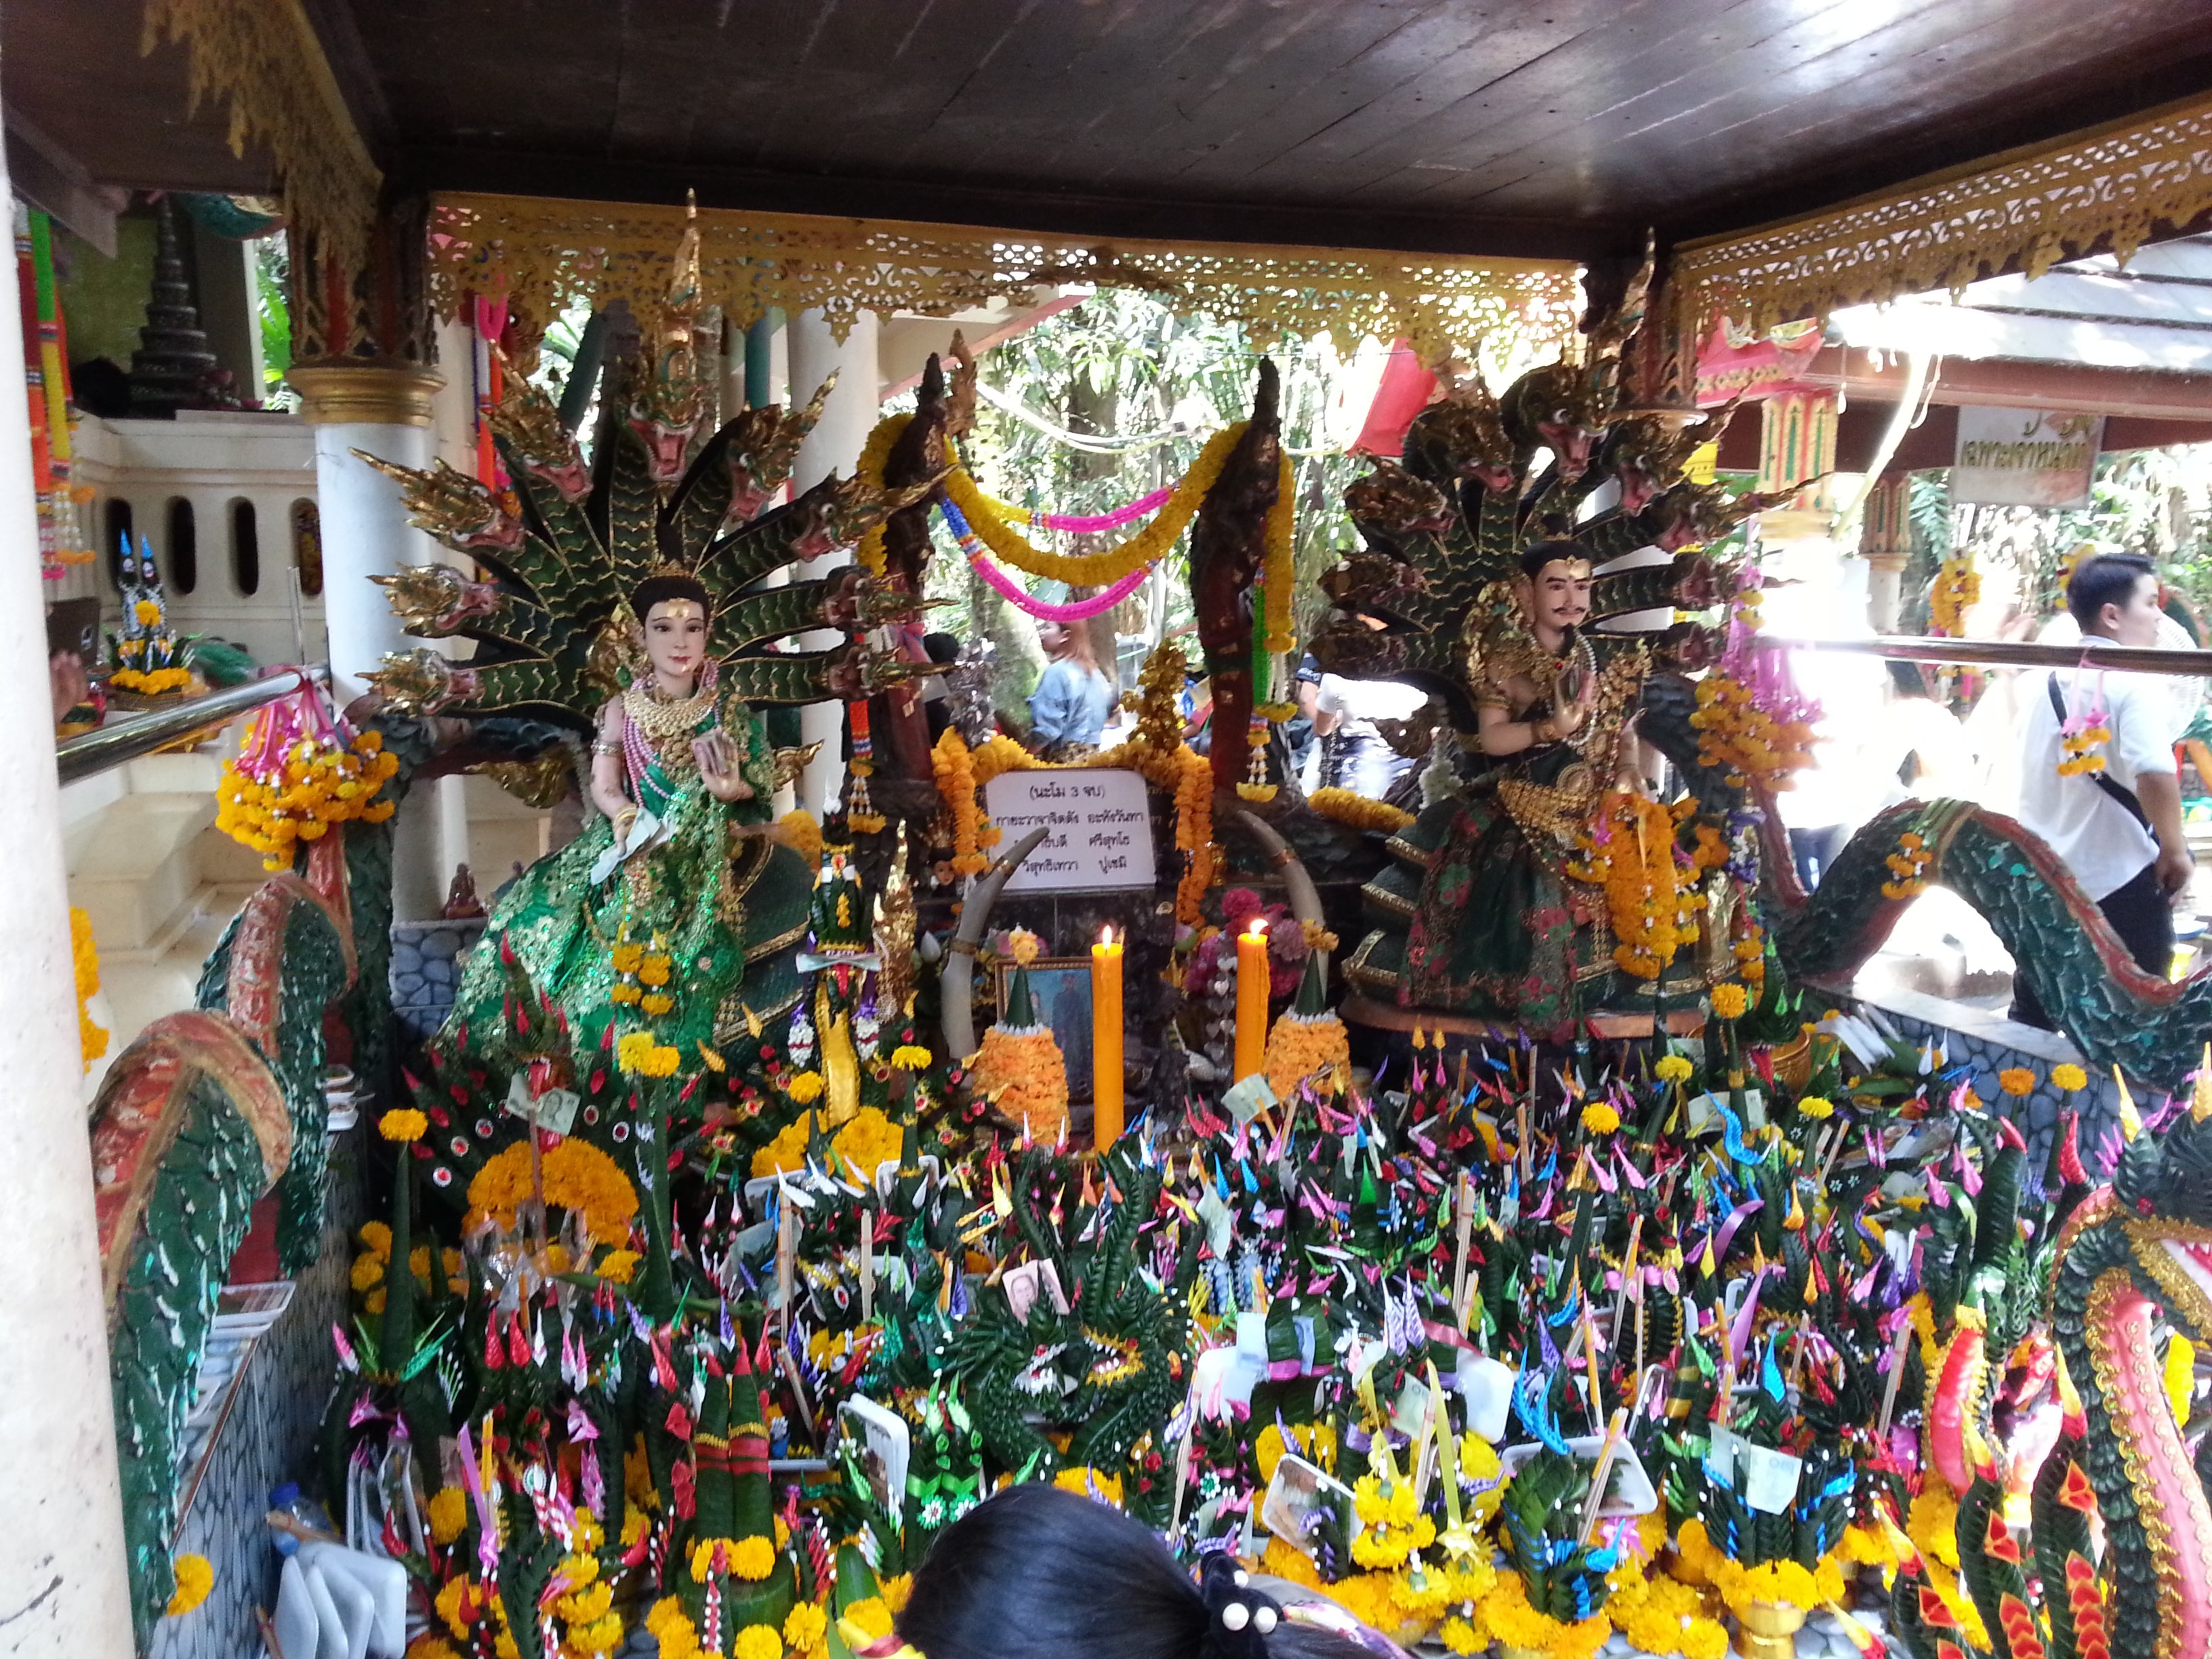 Shrine to Grandpa Naga Pu Si Suttho and Grandma Naga Si Pathumma